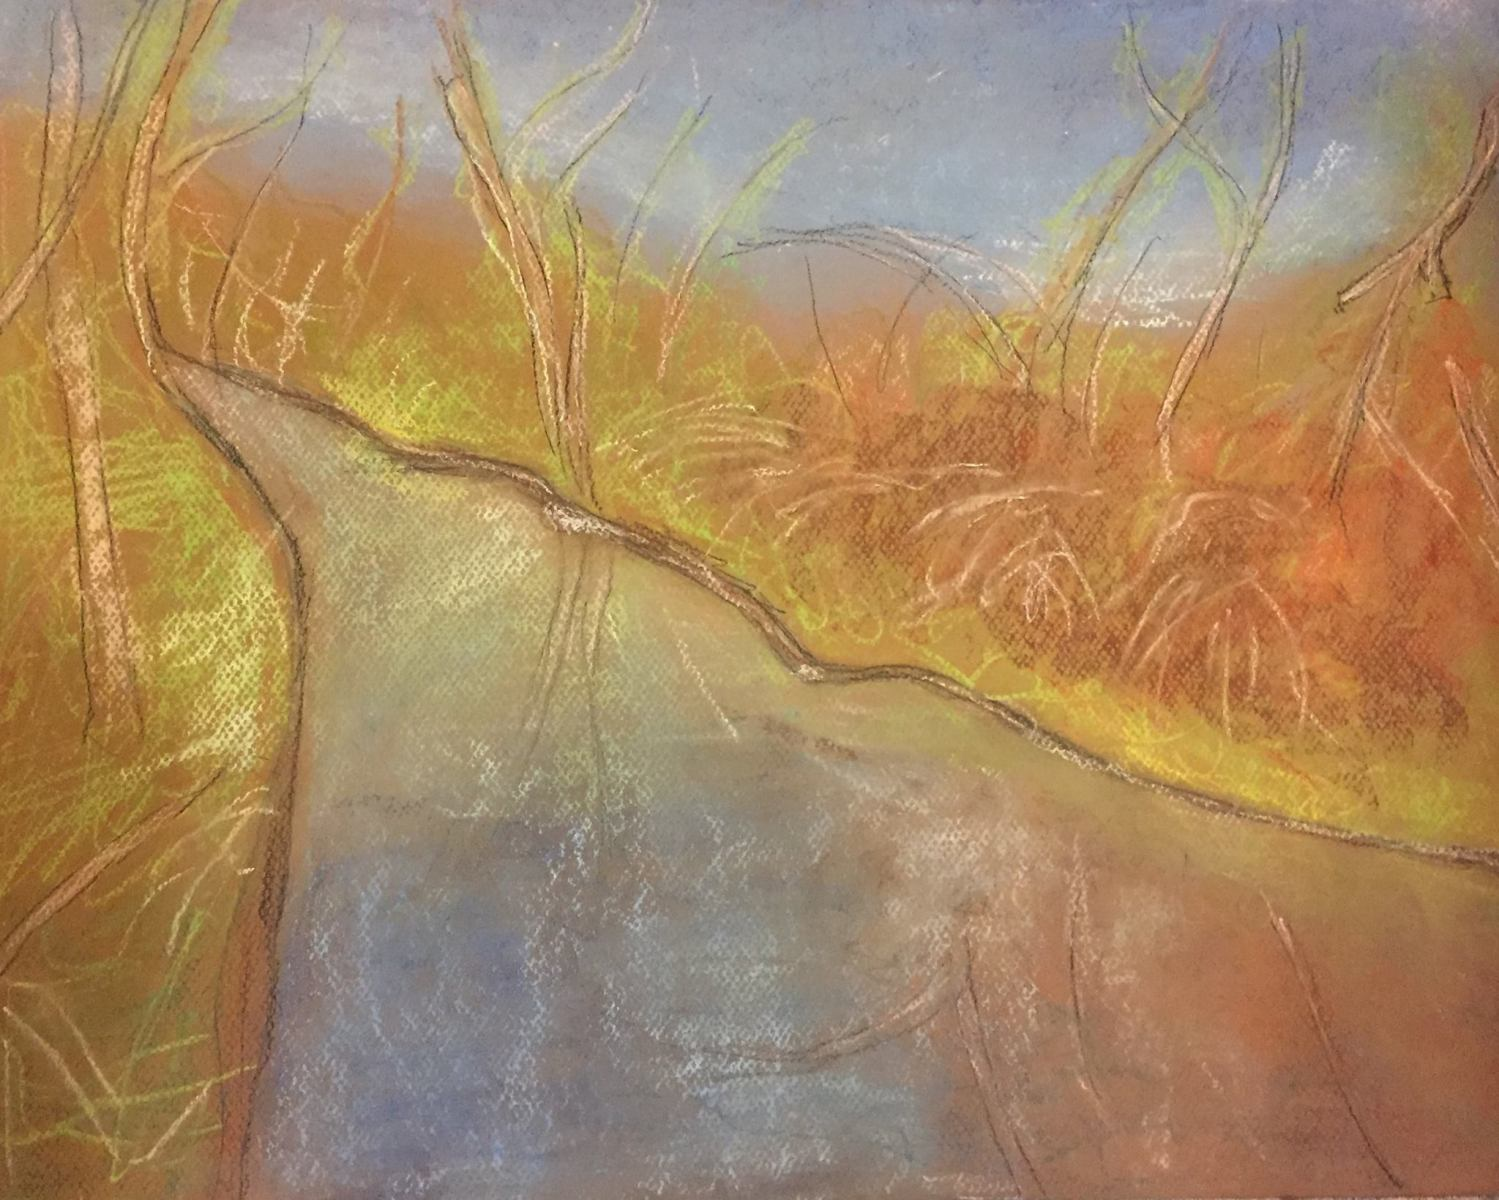 Rivulet After the Rain (pastel on paper)